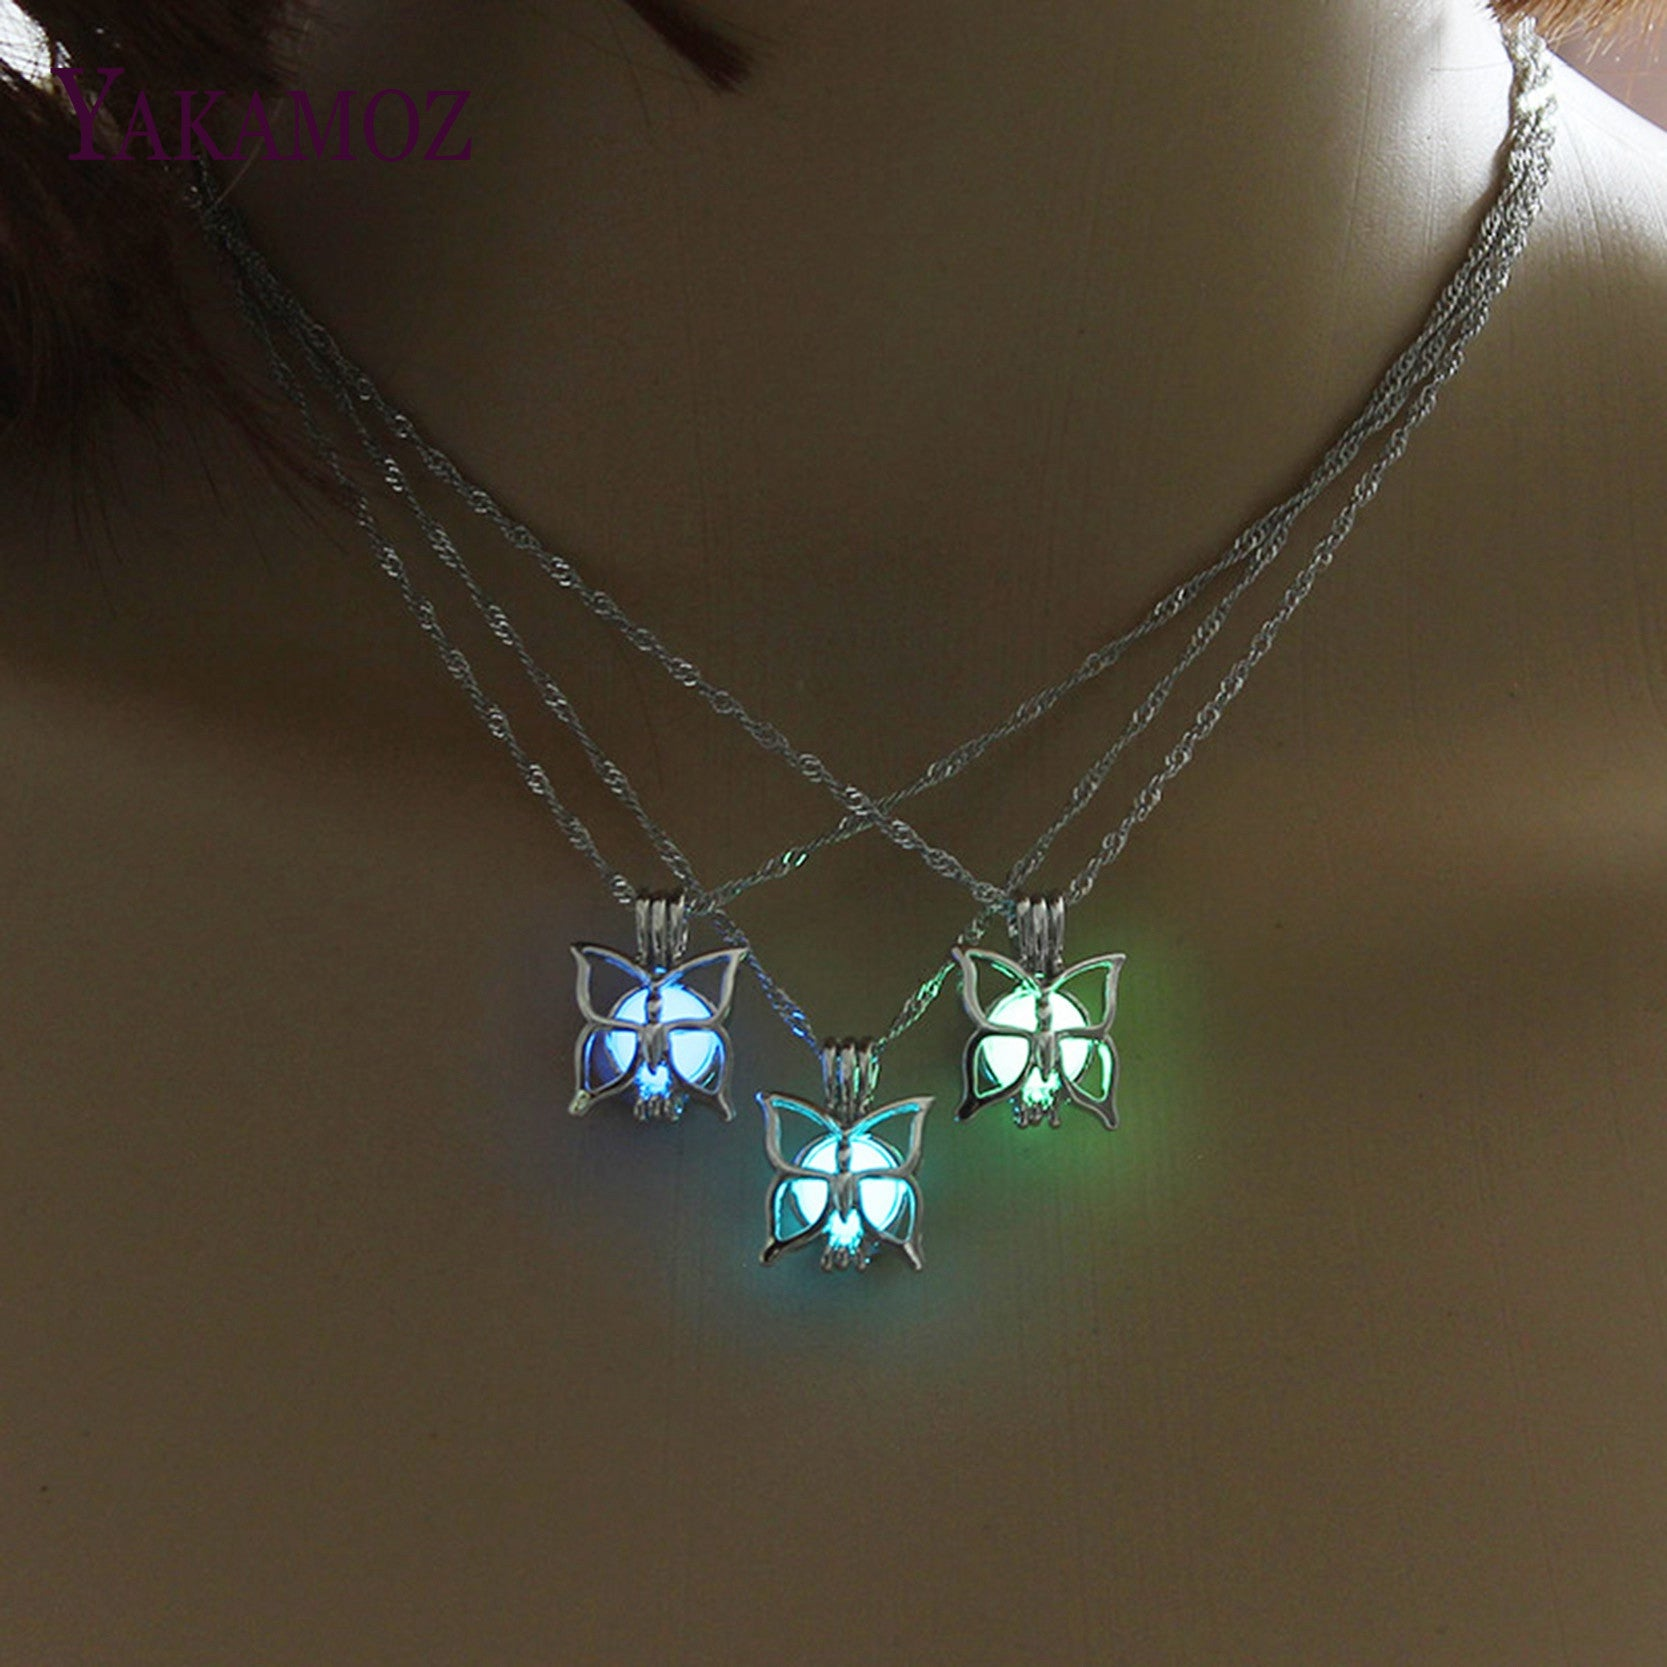 Butterfly Necklace Glow in the Dark 3 Colors Luminous Jewelry Charm Choker